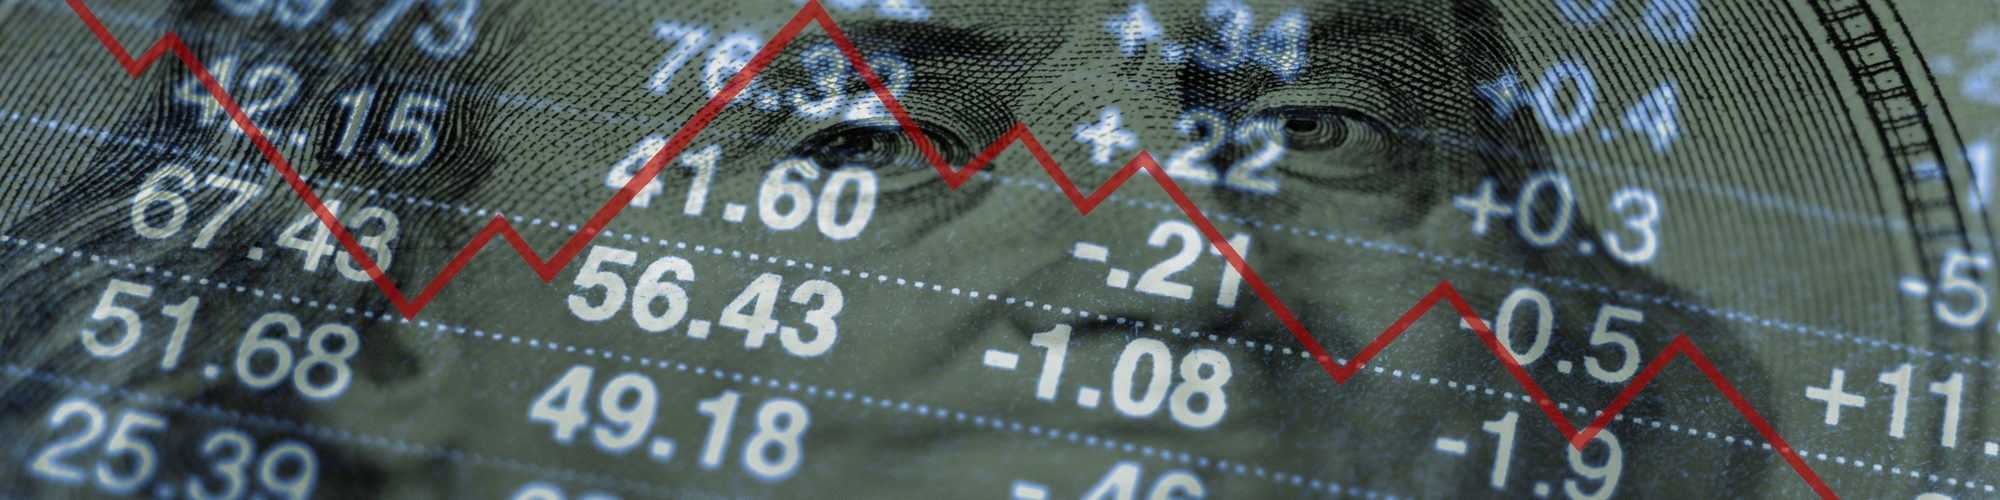 Your Alternative Investments Went Bad?